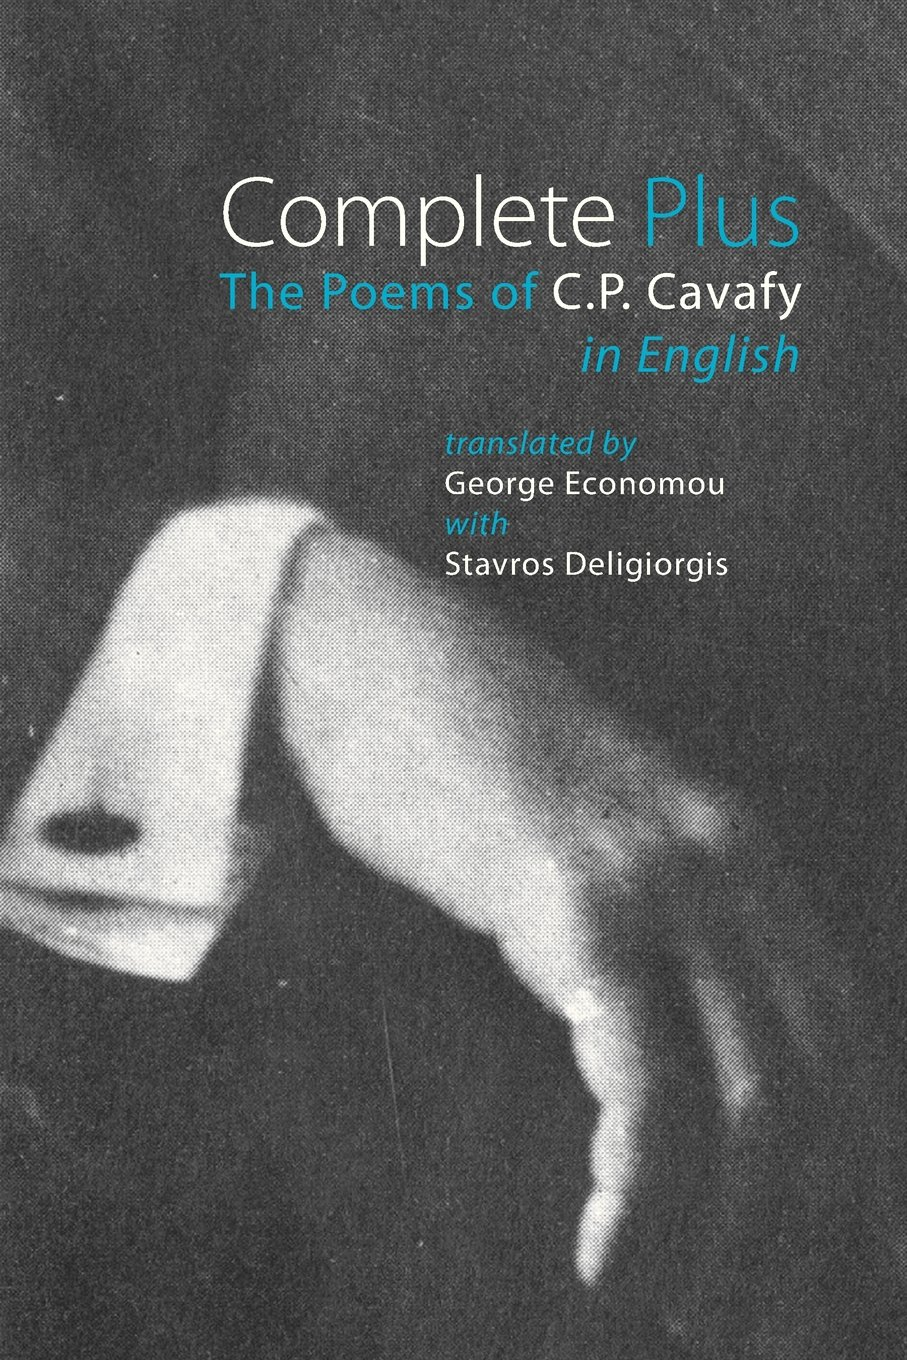 by C. P. Cavafy, translated from GREEK by George Economou & Stavros Deligiorgis